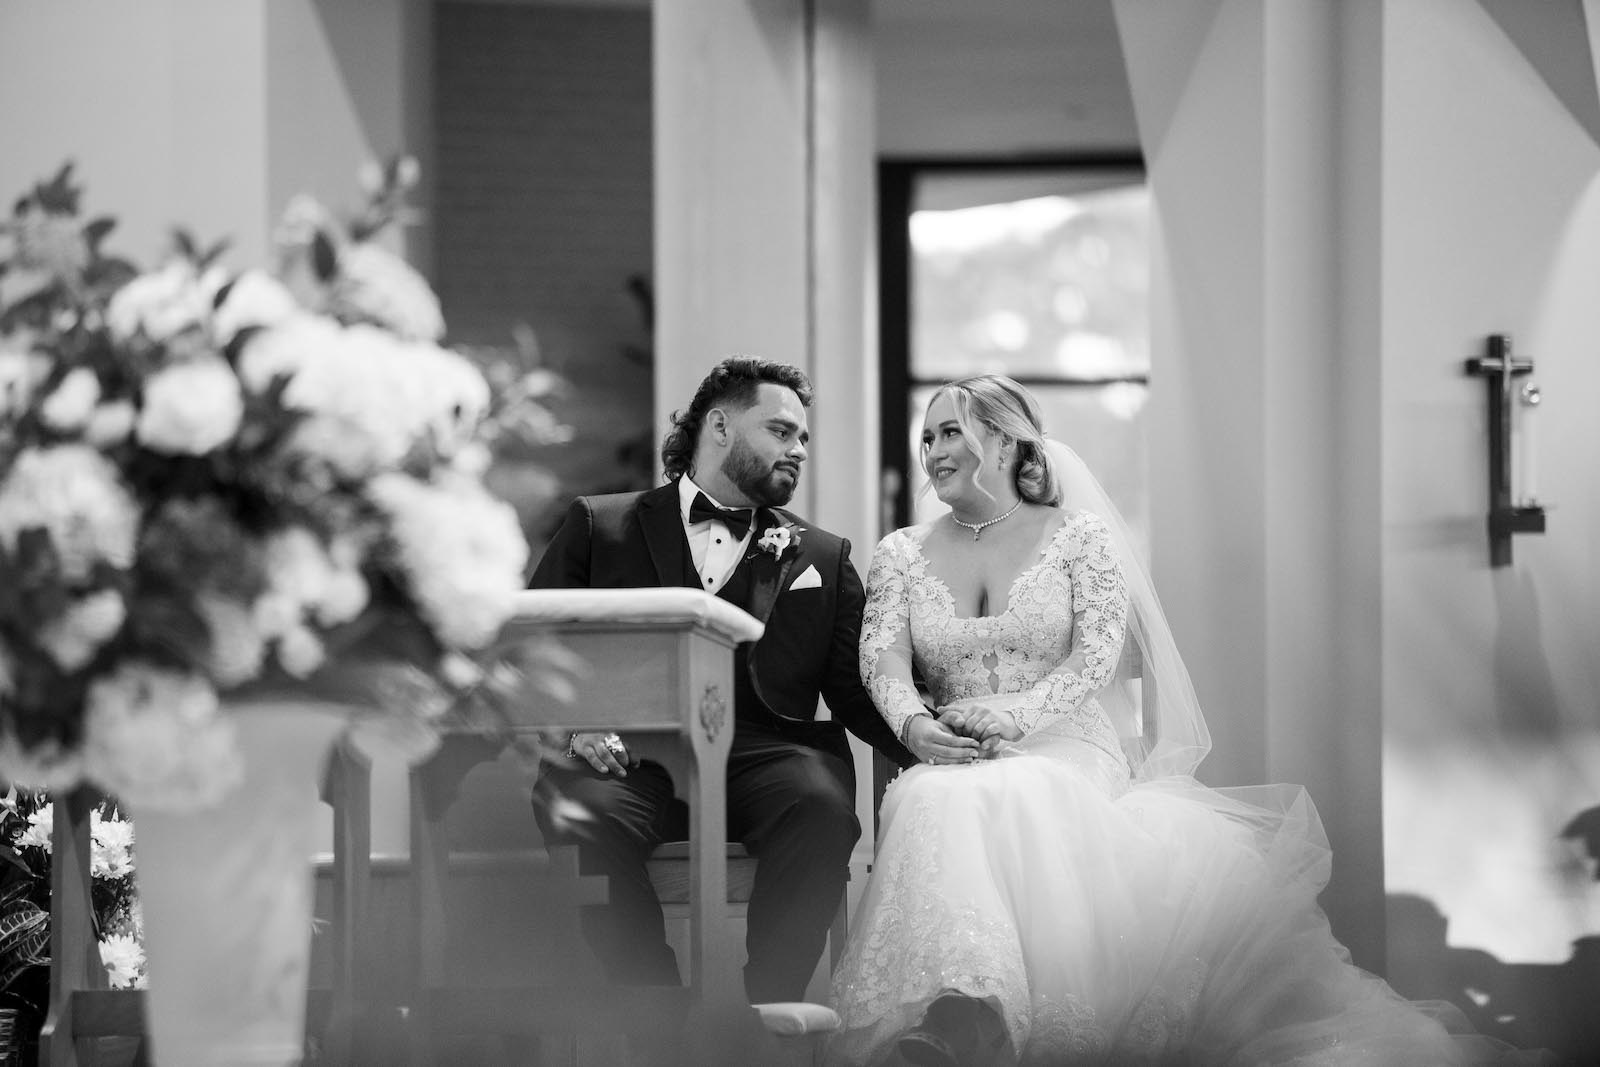 Tampa Bride and Groom Exchanging Vows During Traditional Church Wedding Ceremony St. Jude's Cathedral | Wedding Planner Parties A'la Carte